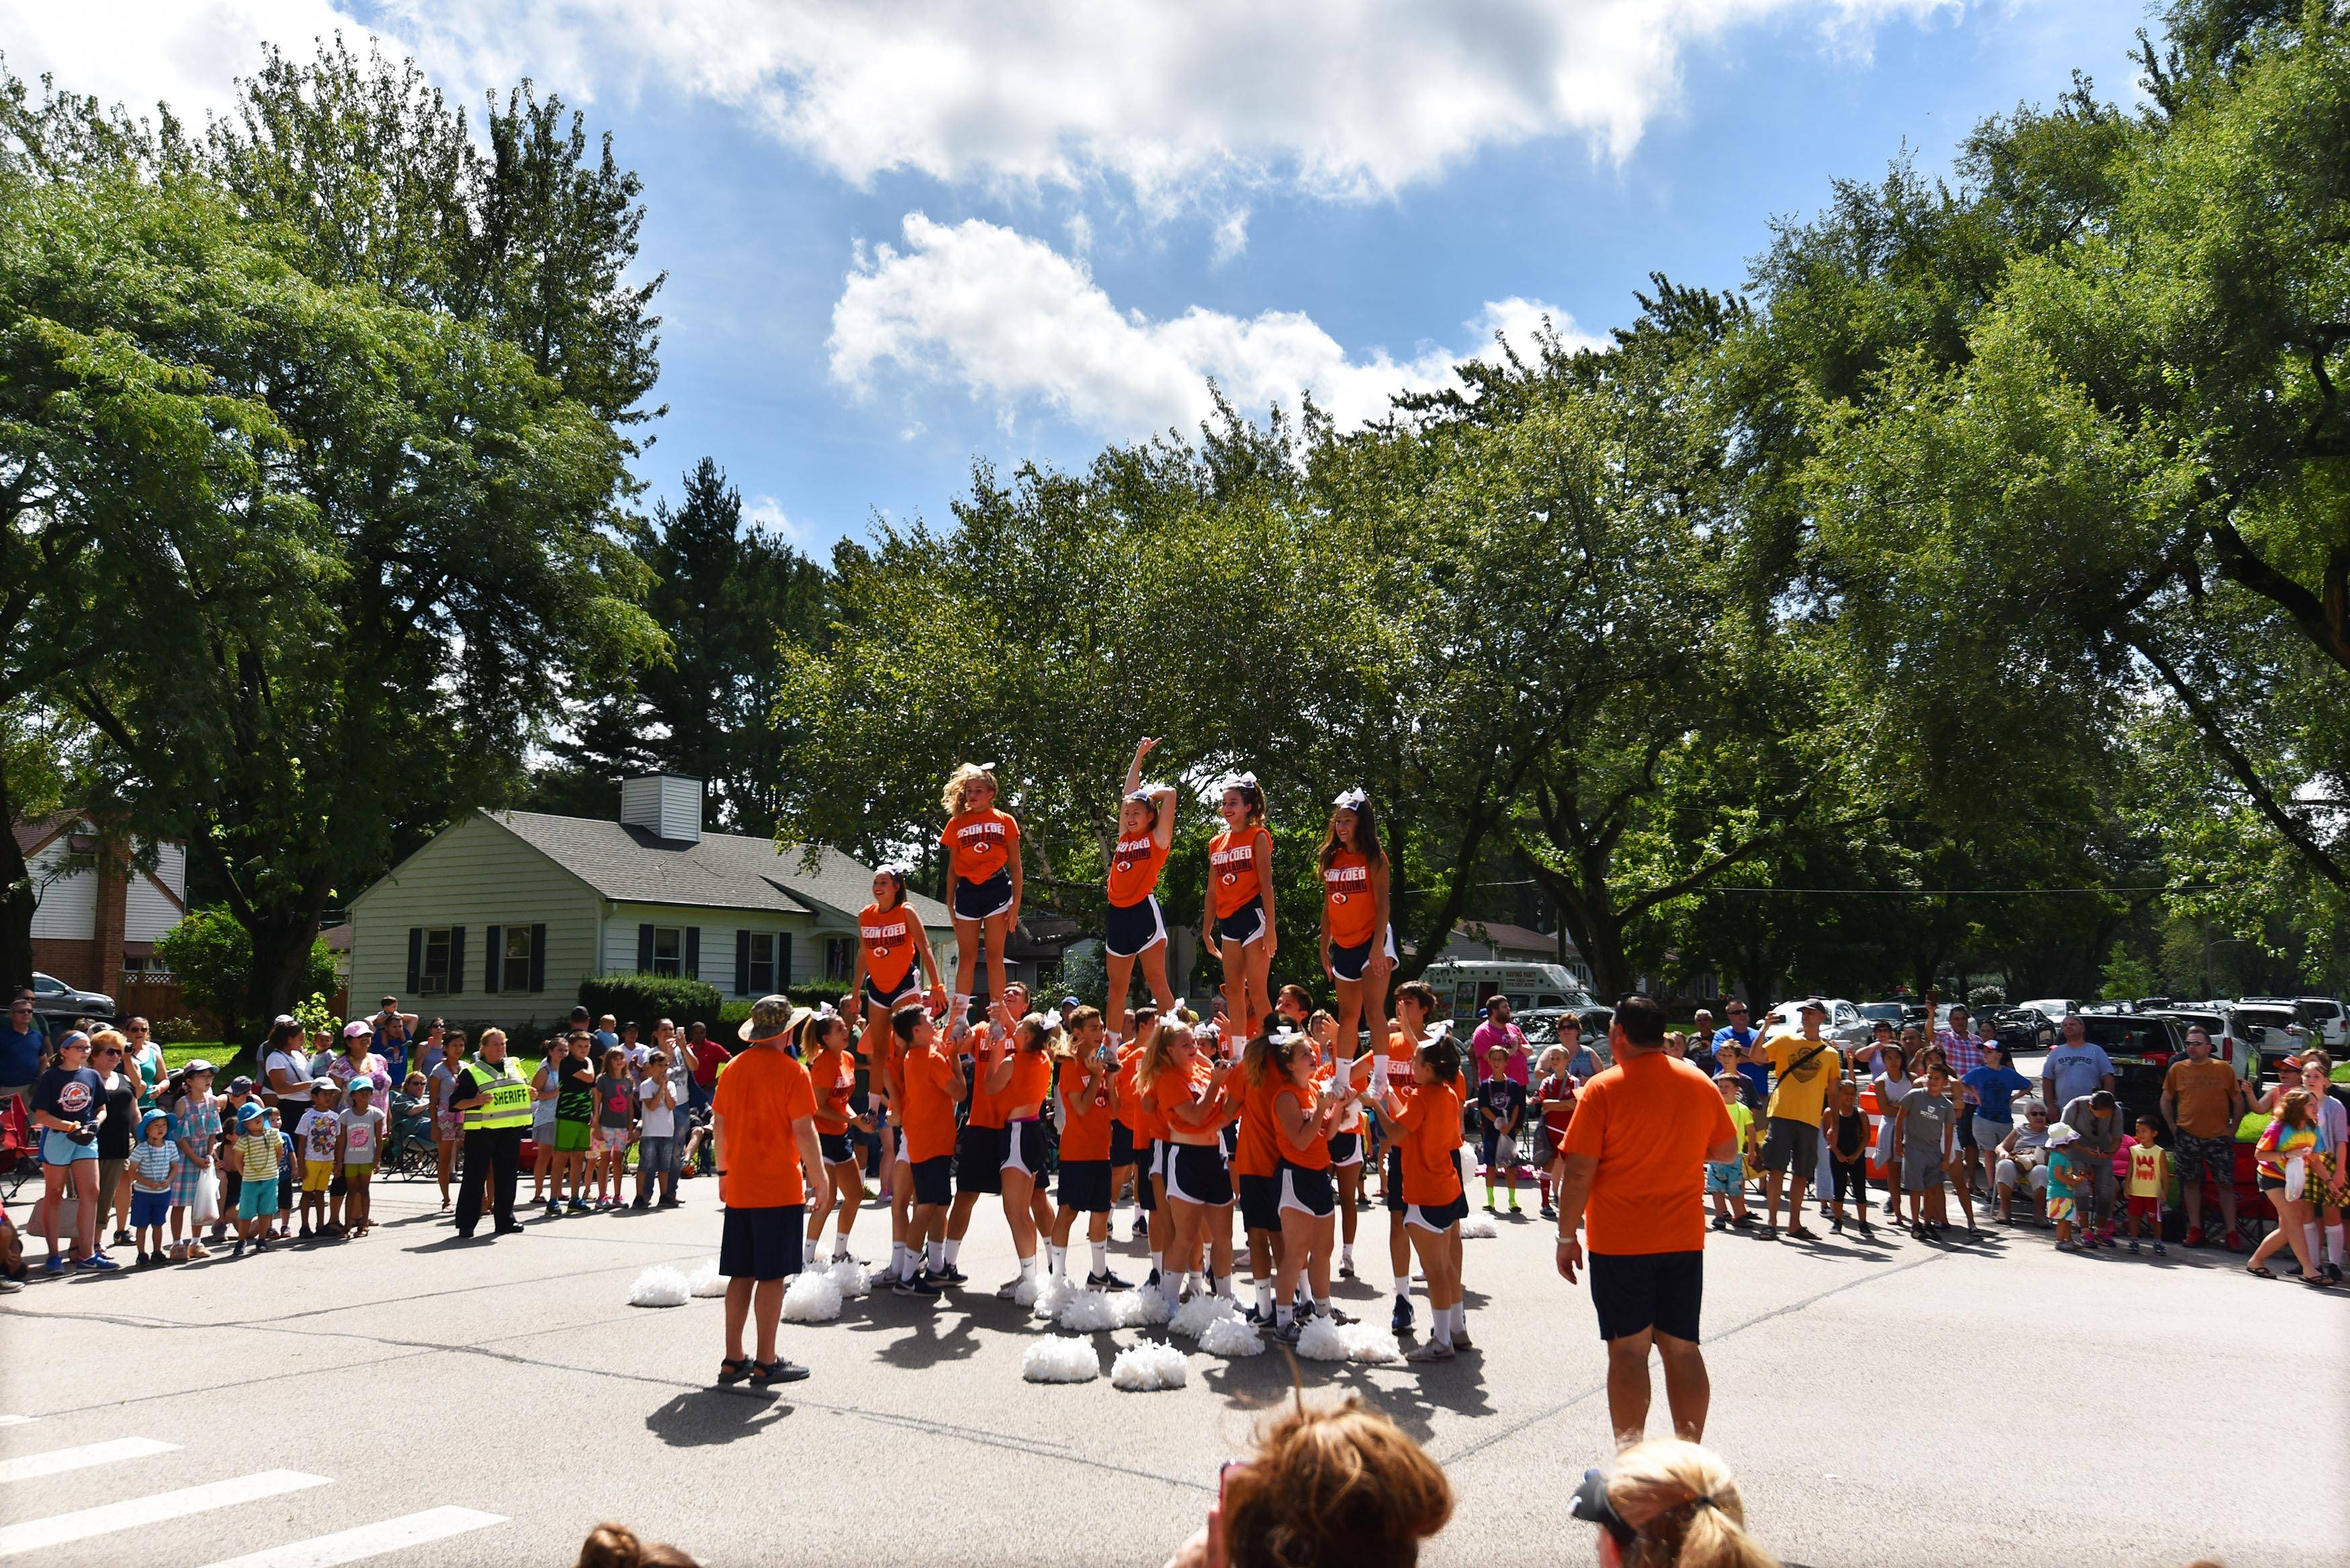 Buffalo Grove High School cheerleaders perform at the corner of Bernard Drive and Raupp Boulevard at the Buffalo Grove Days parade Sunday morning.